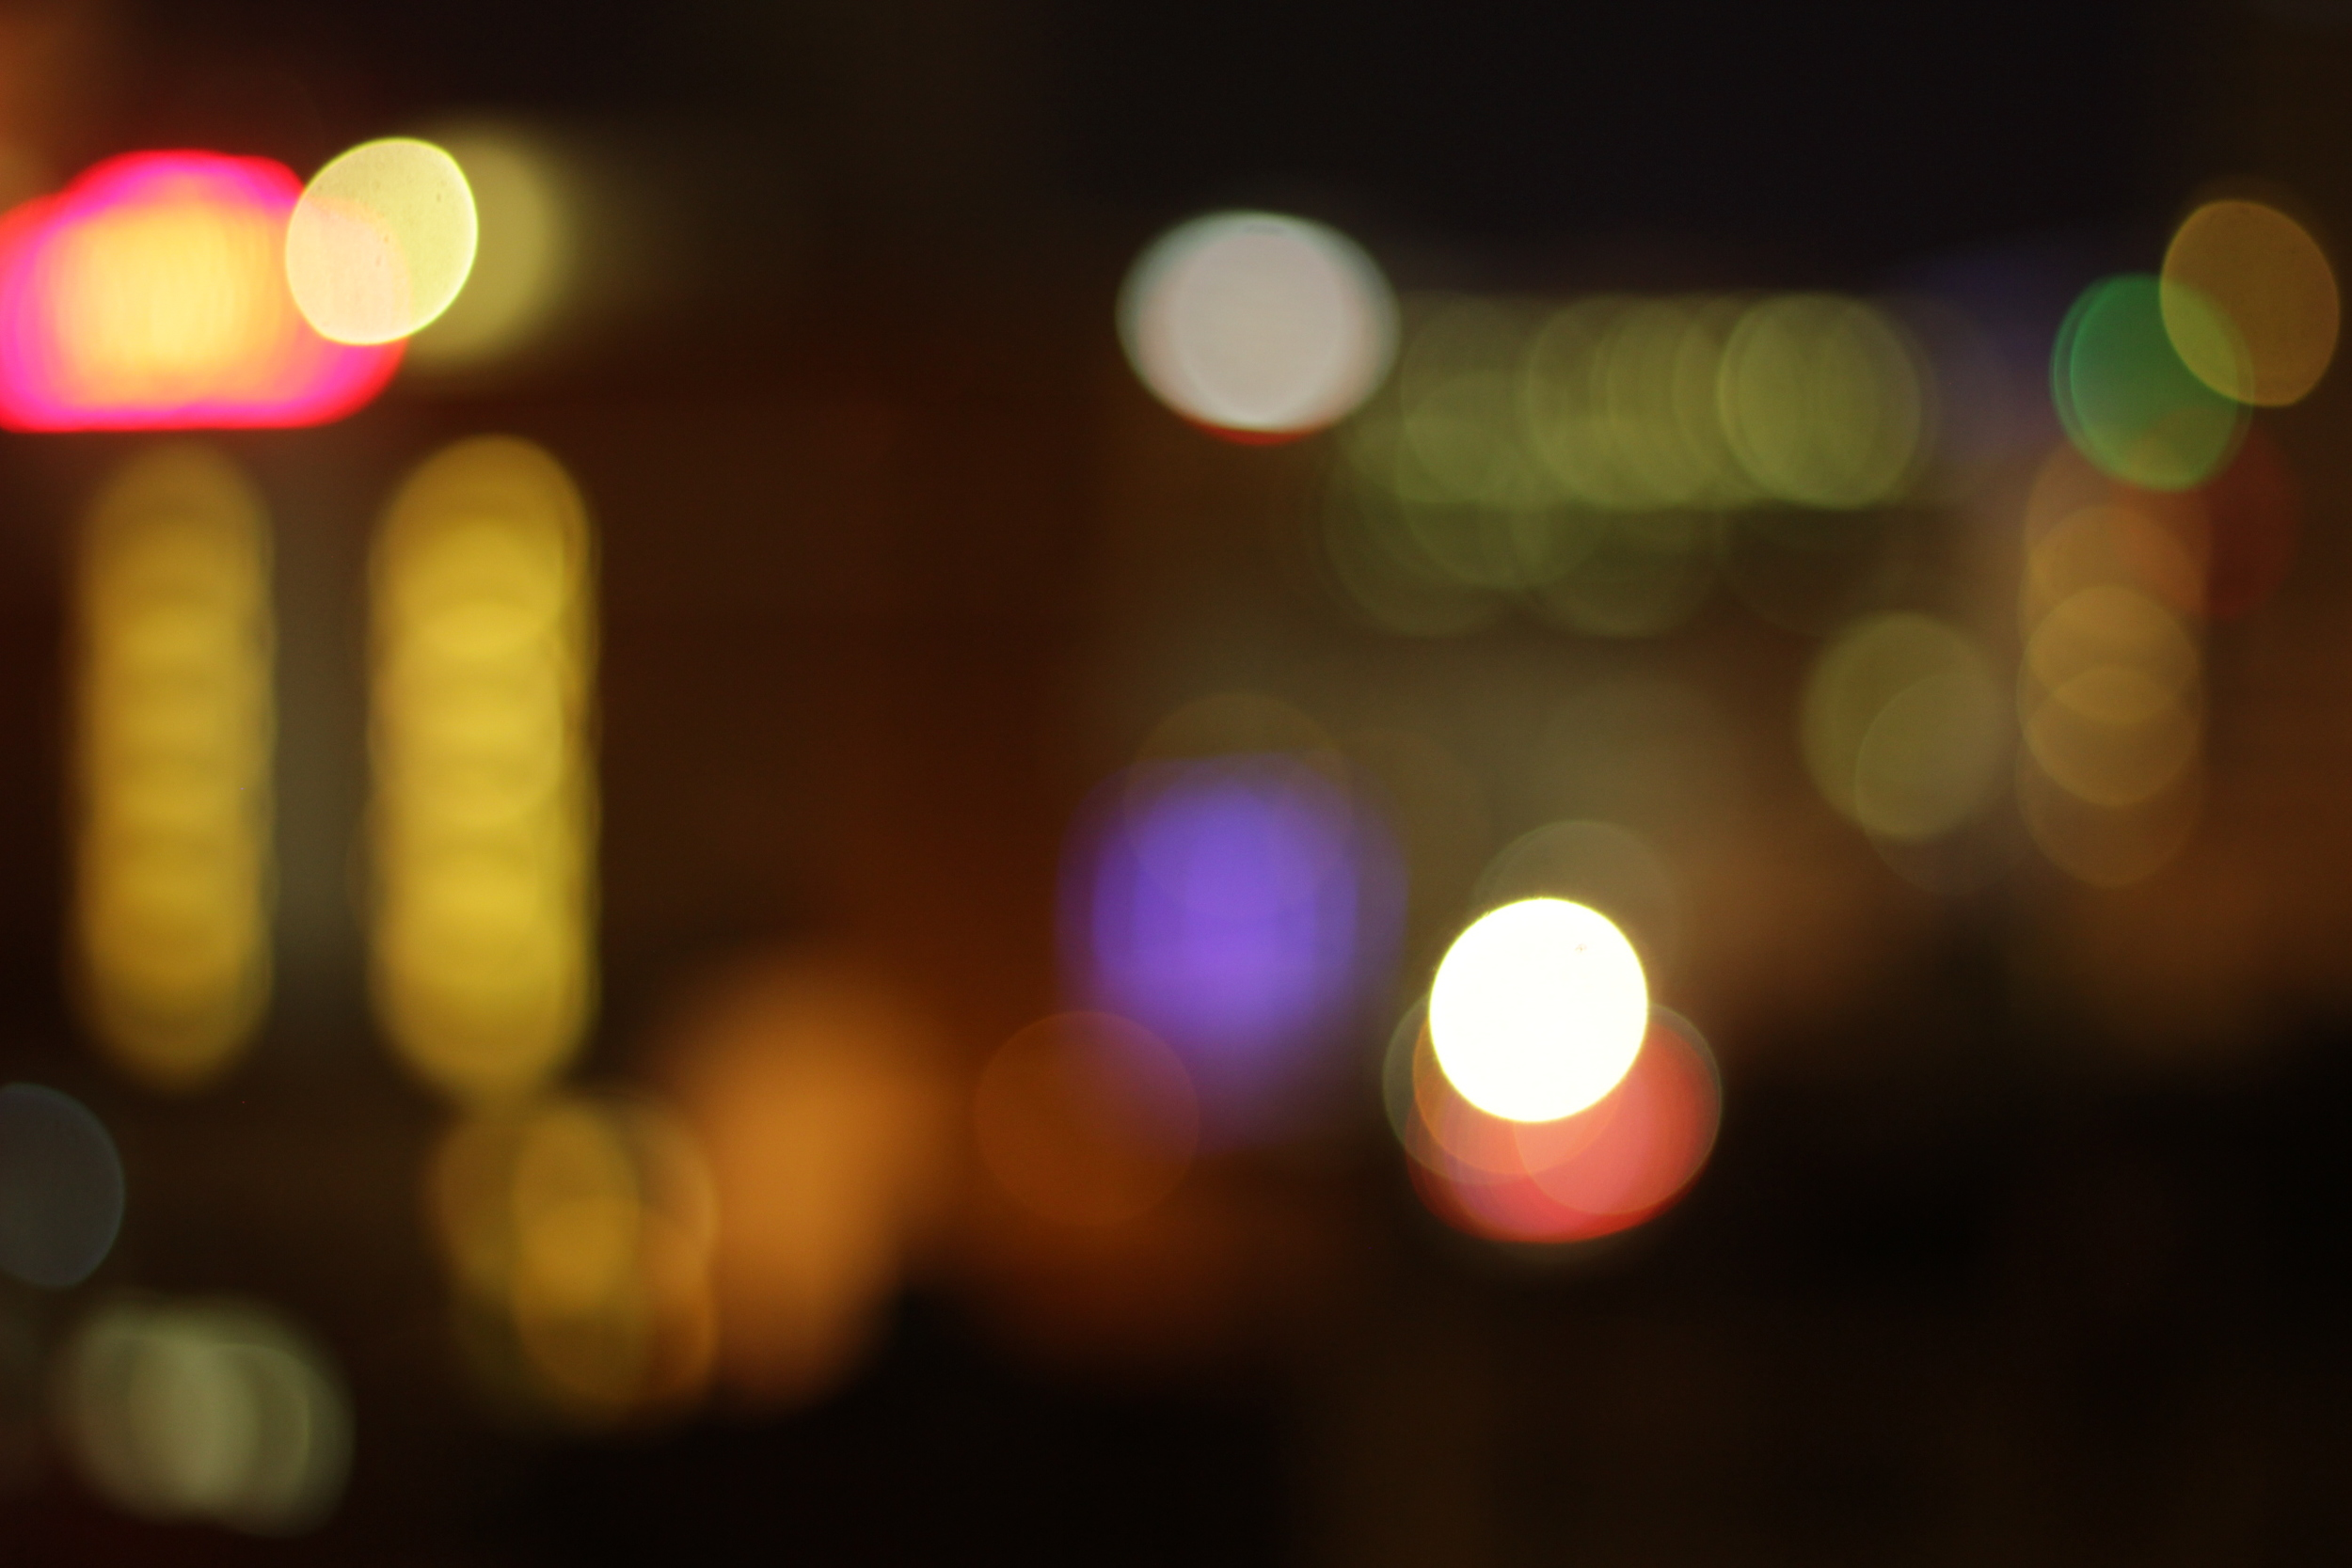 Way out of focus, in camera. (click for full image)